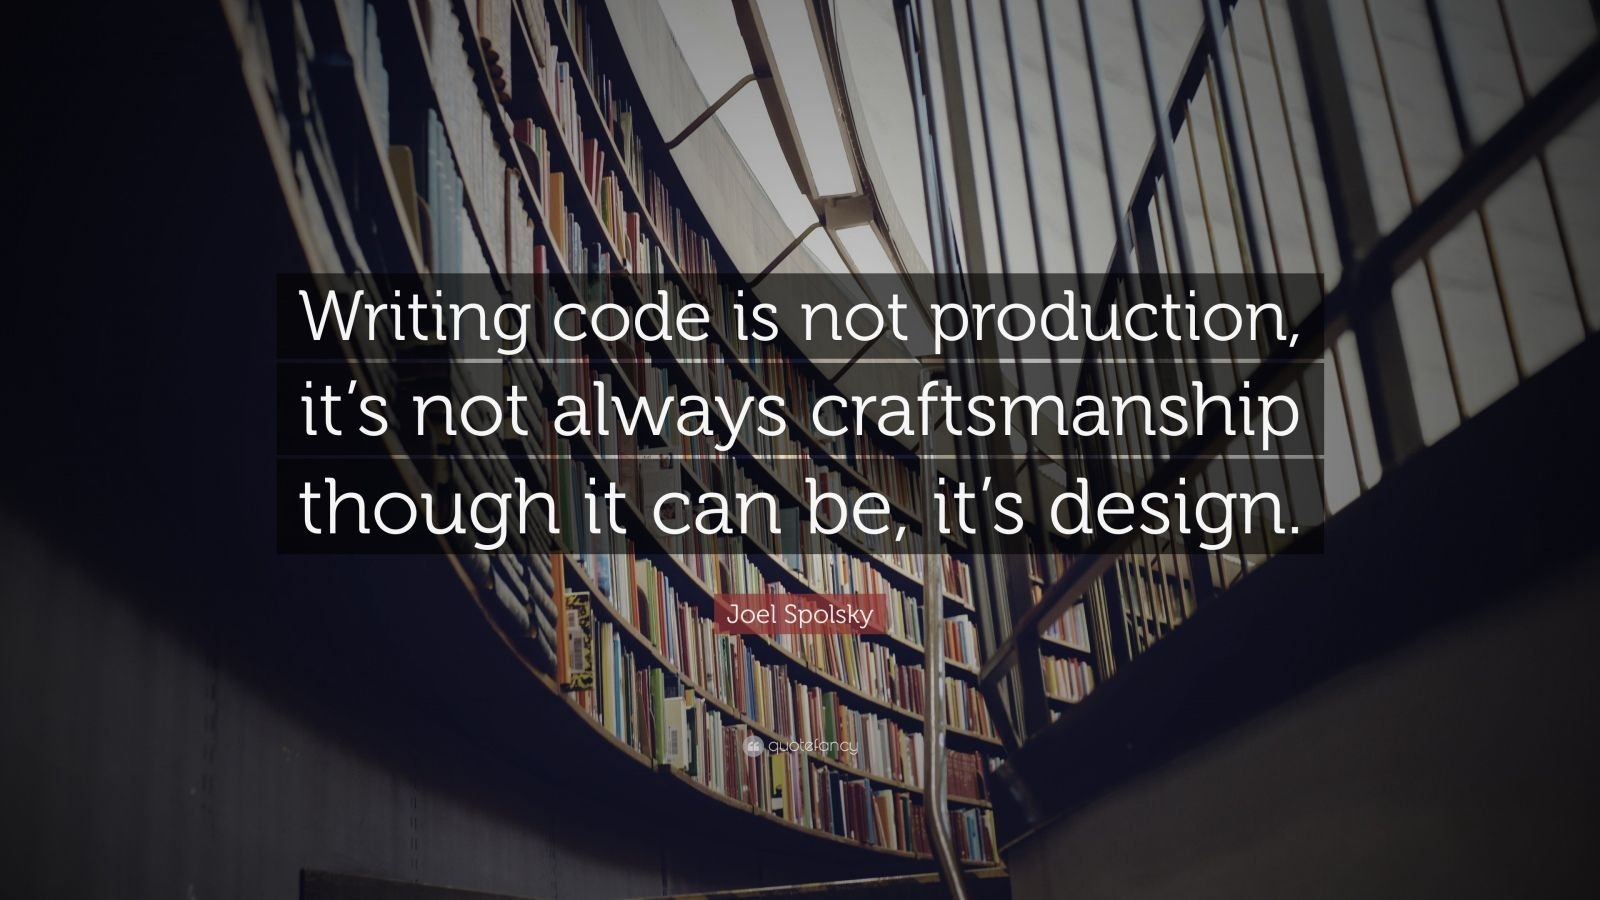 """Joel Spolsky Quote: """"Writing code is not production, it's not always craftsmanship though it can be, it's design."""""""